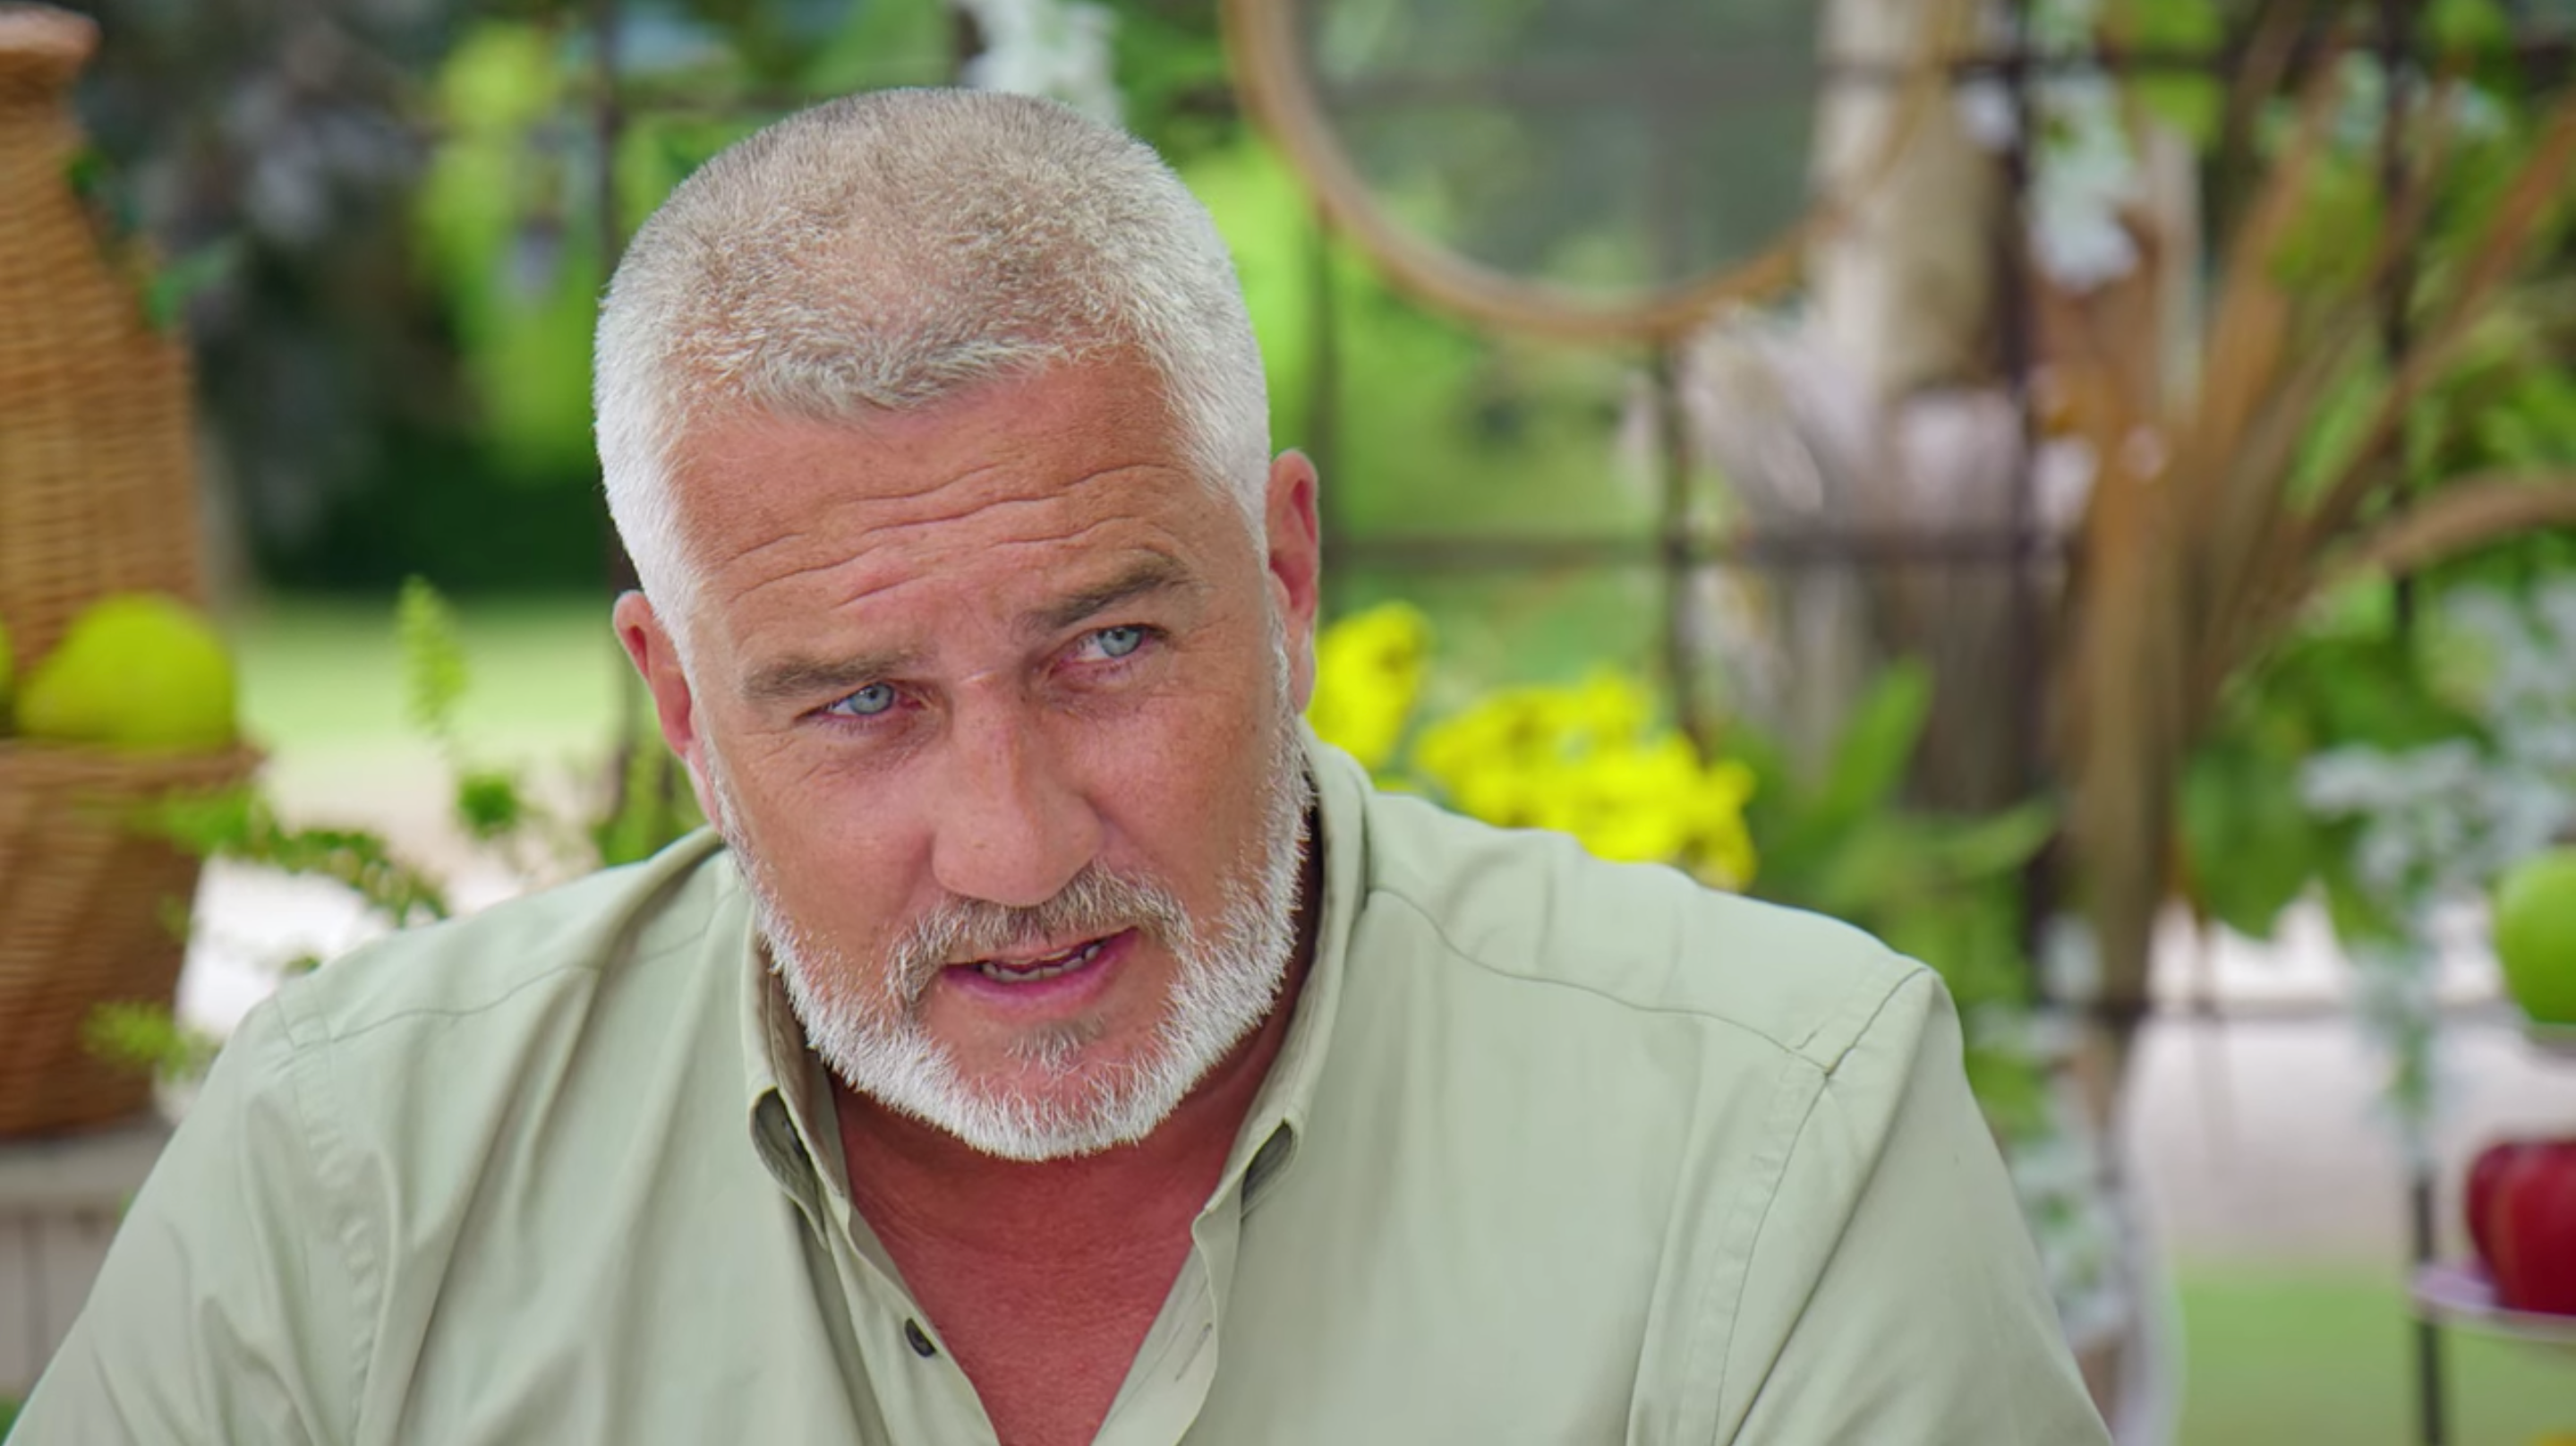 Paul Hollywood making a concerned expression on The Great British Bake-Off.